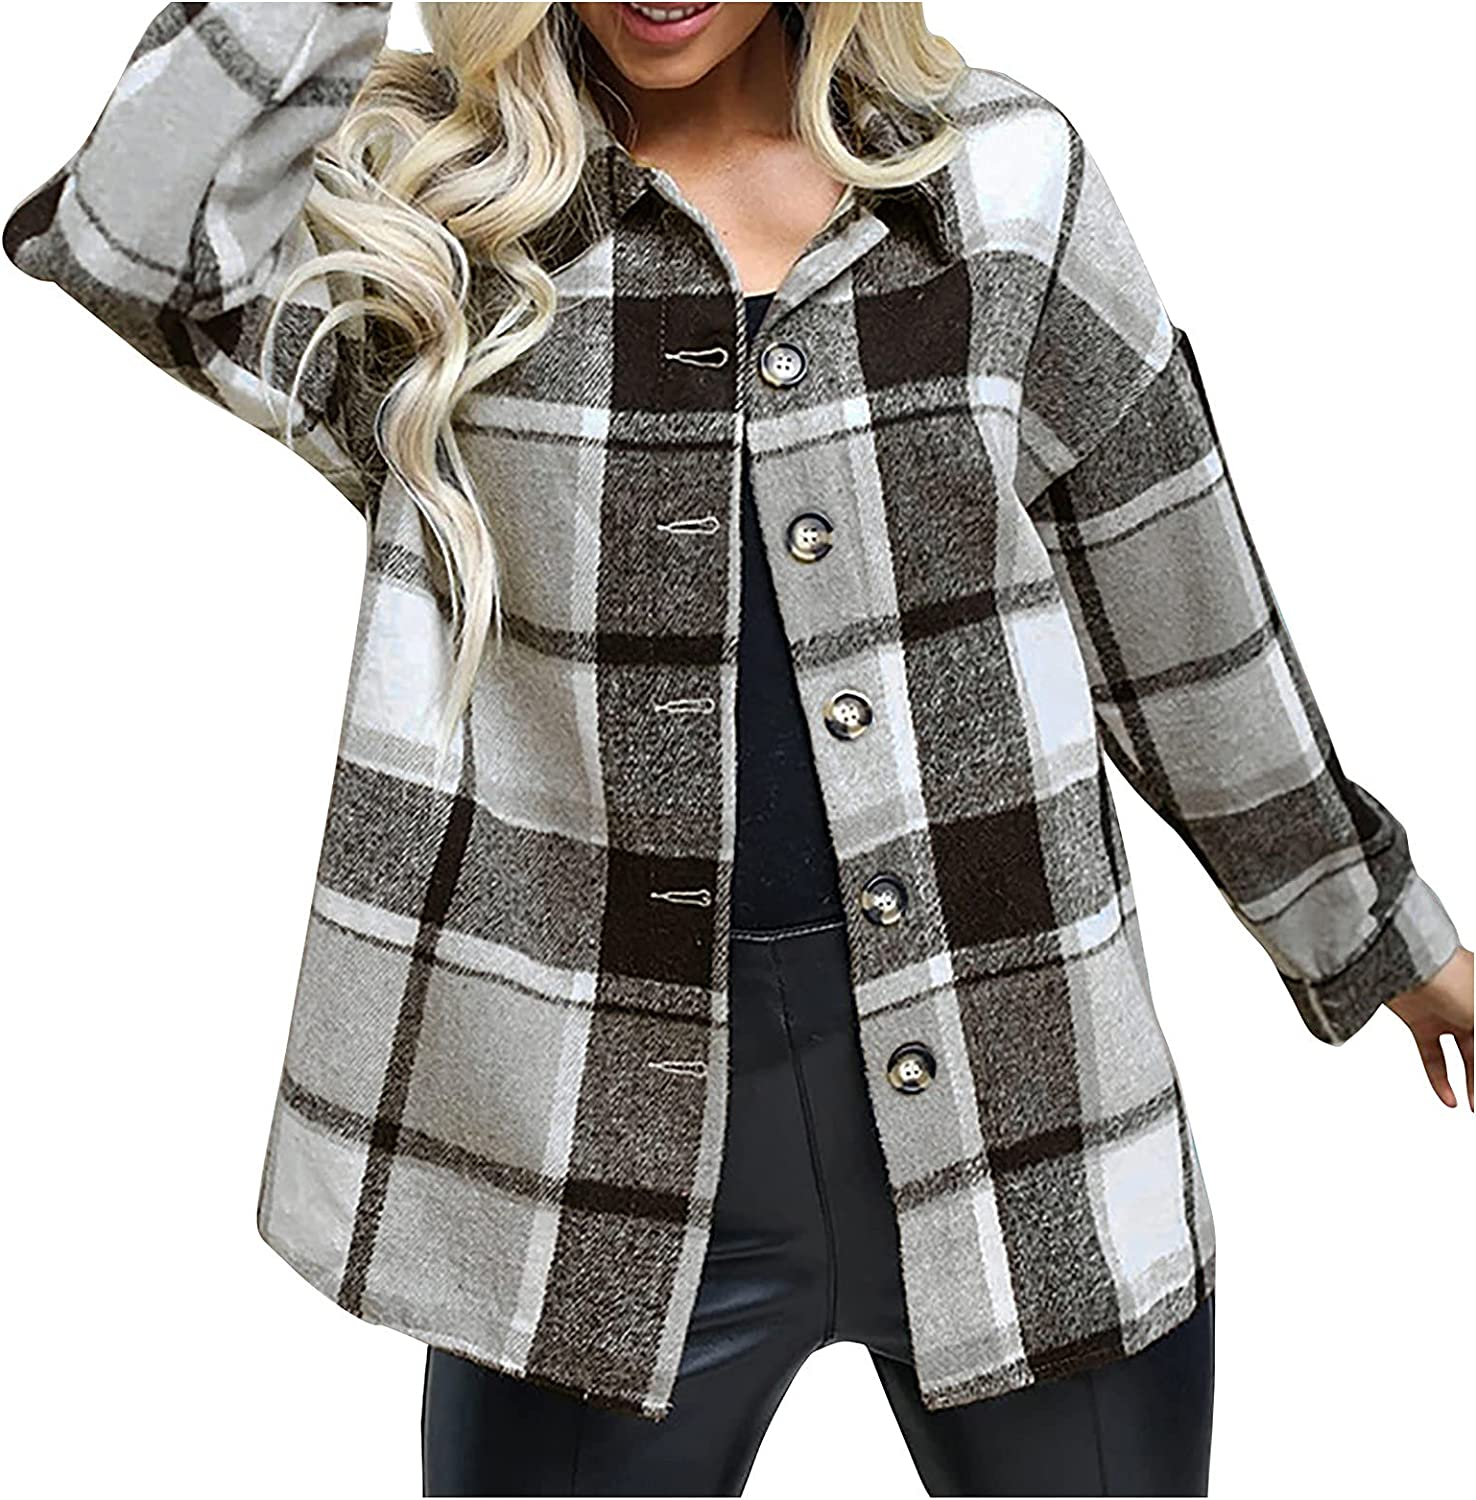 Womens Plaid Shirt Coats Classic Button Down Shirts Jacket Casual Thickened Warm Outwear Loose Comfy Fall Winter Jacket